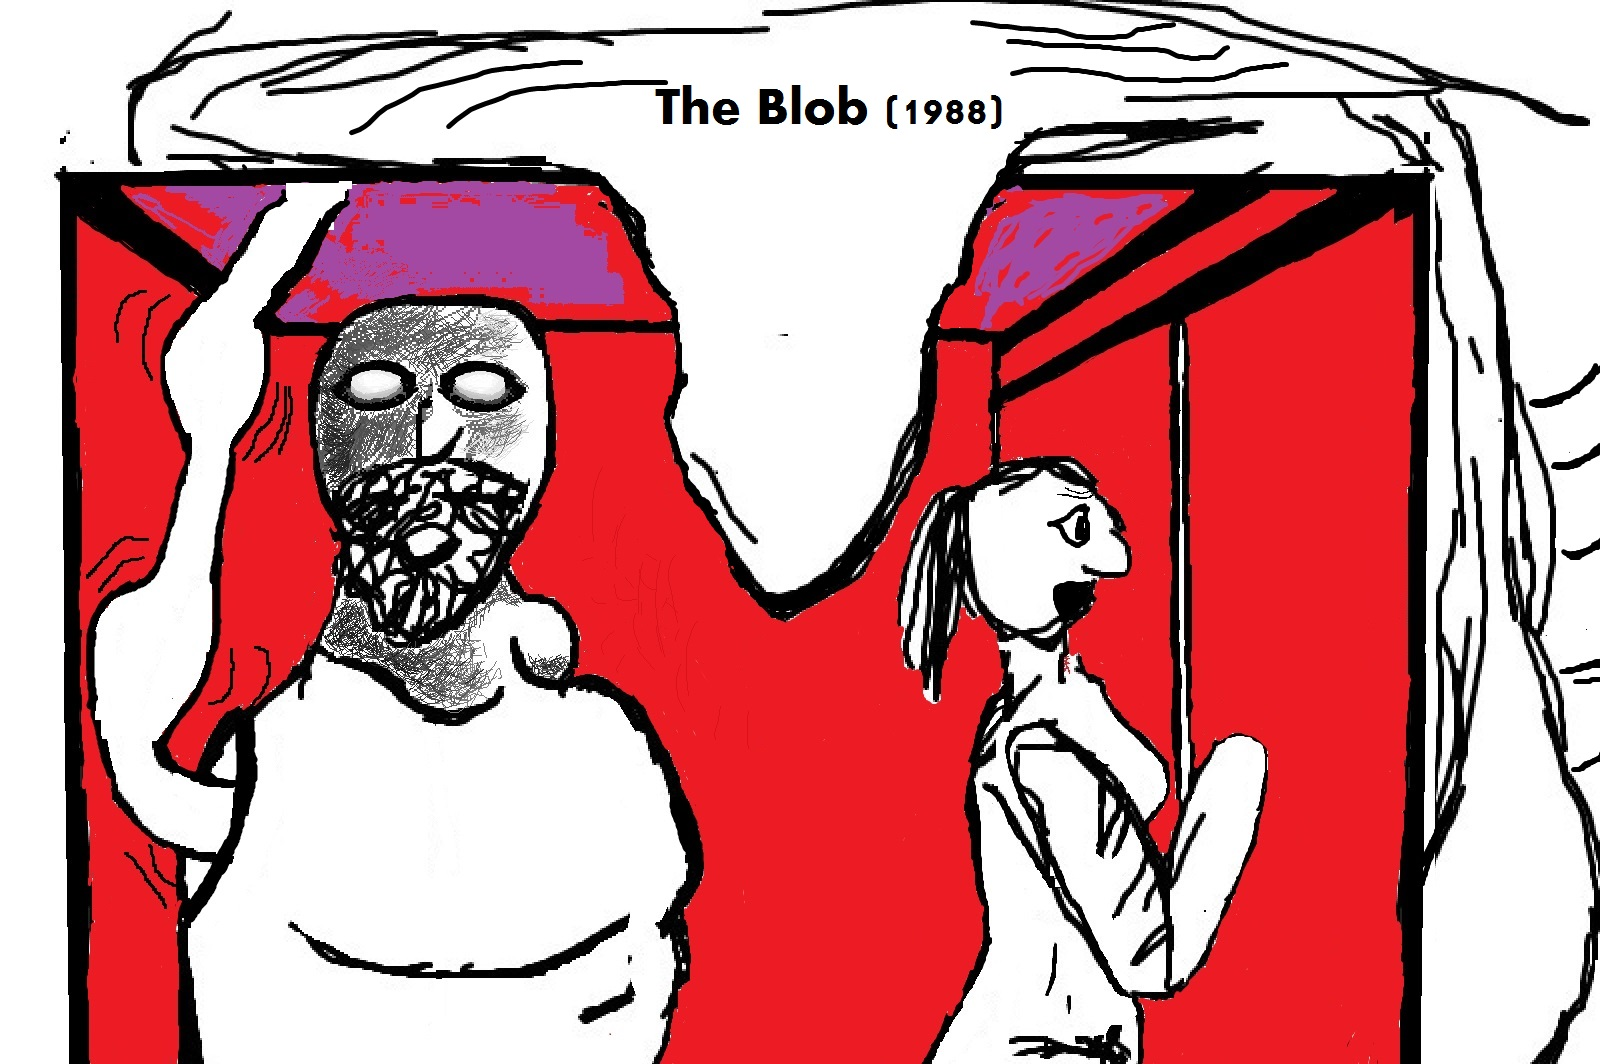 The Blob don't allow humans to live